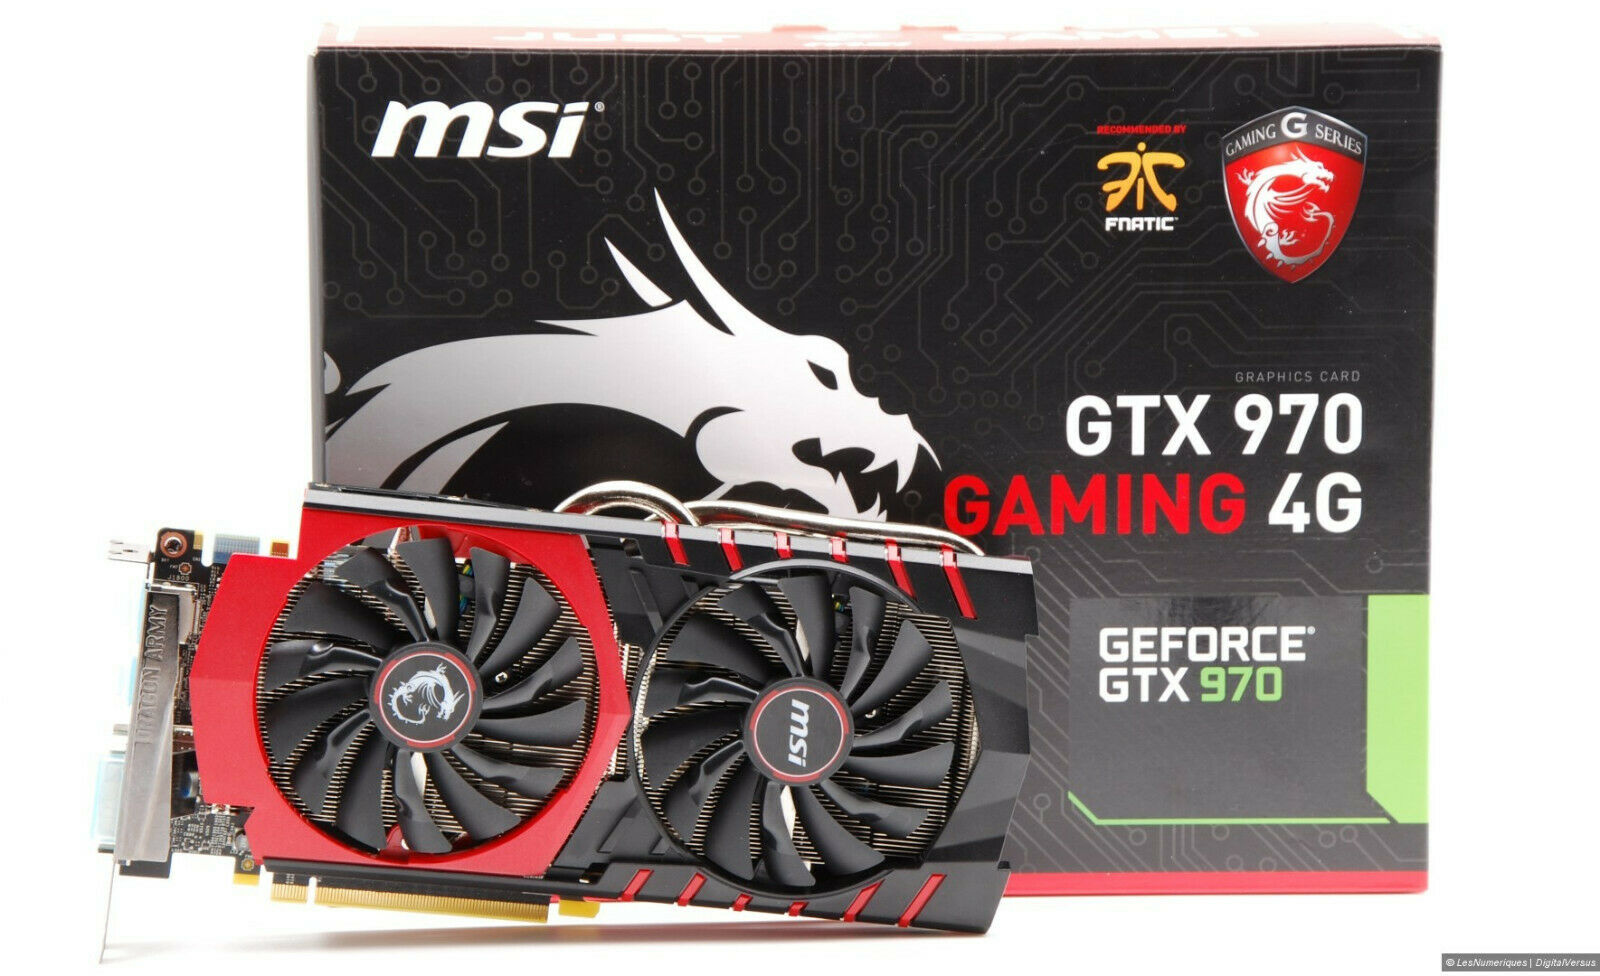 Msi nvidia geforce gtx 970 4 go ddr5 overclocked carte graphique